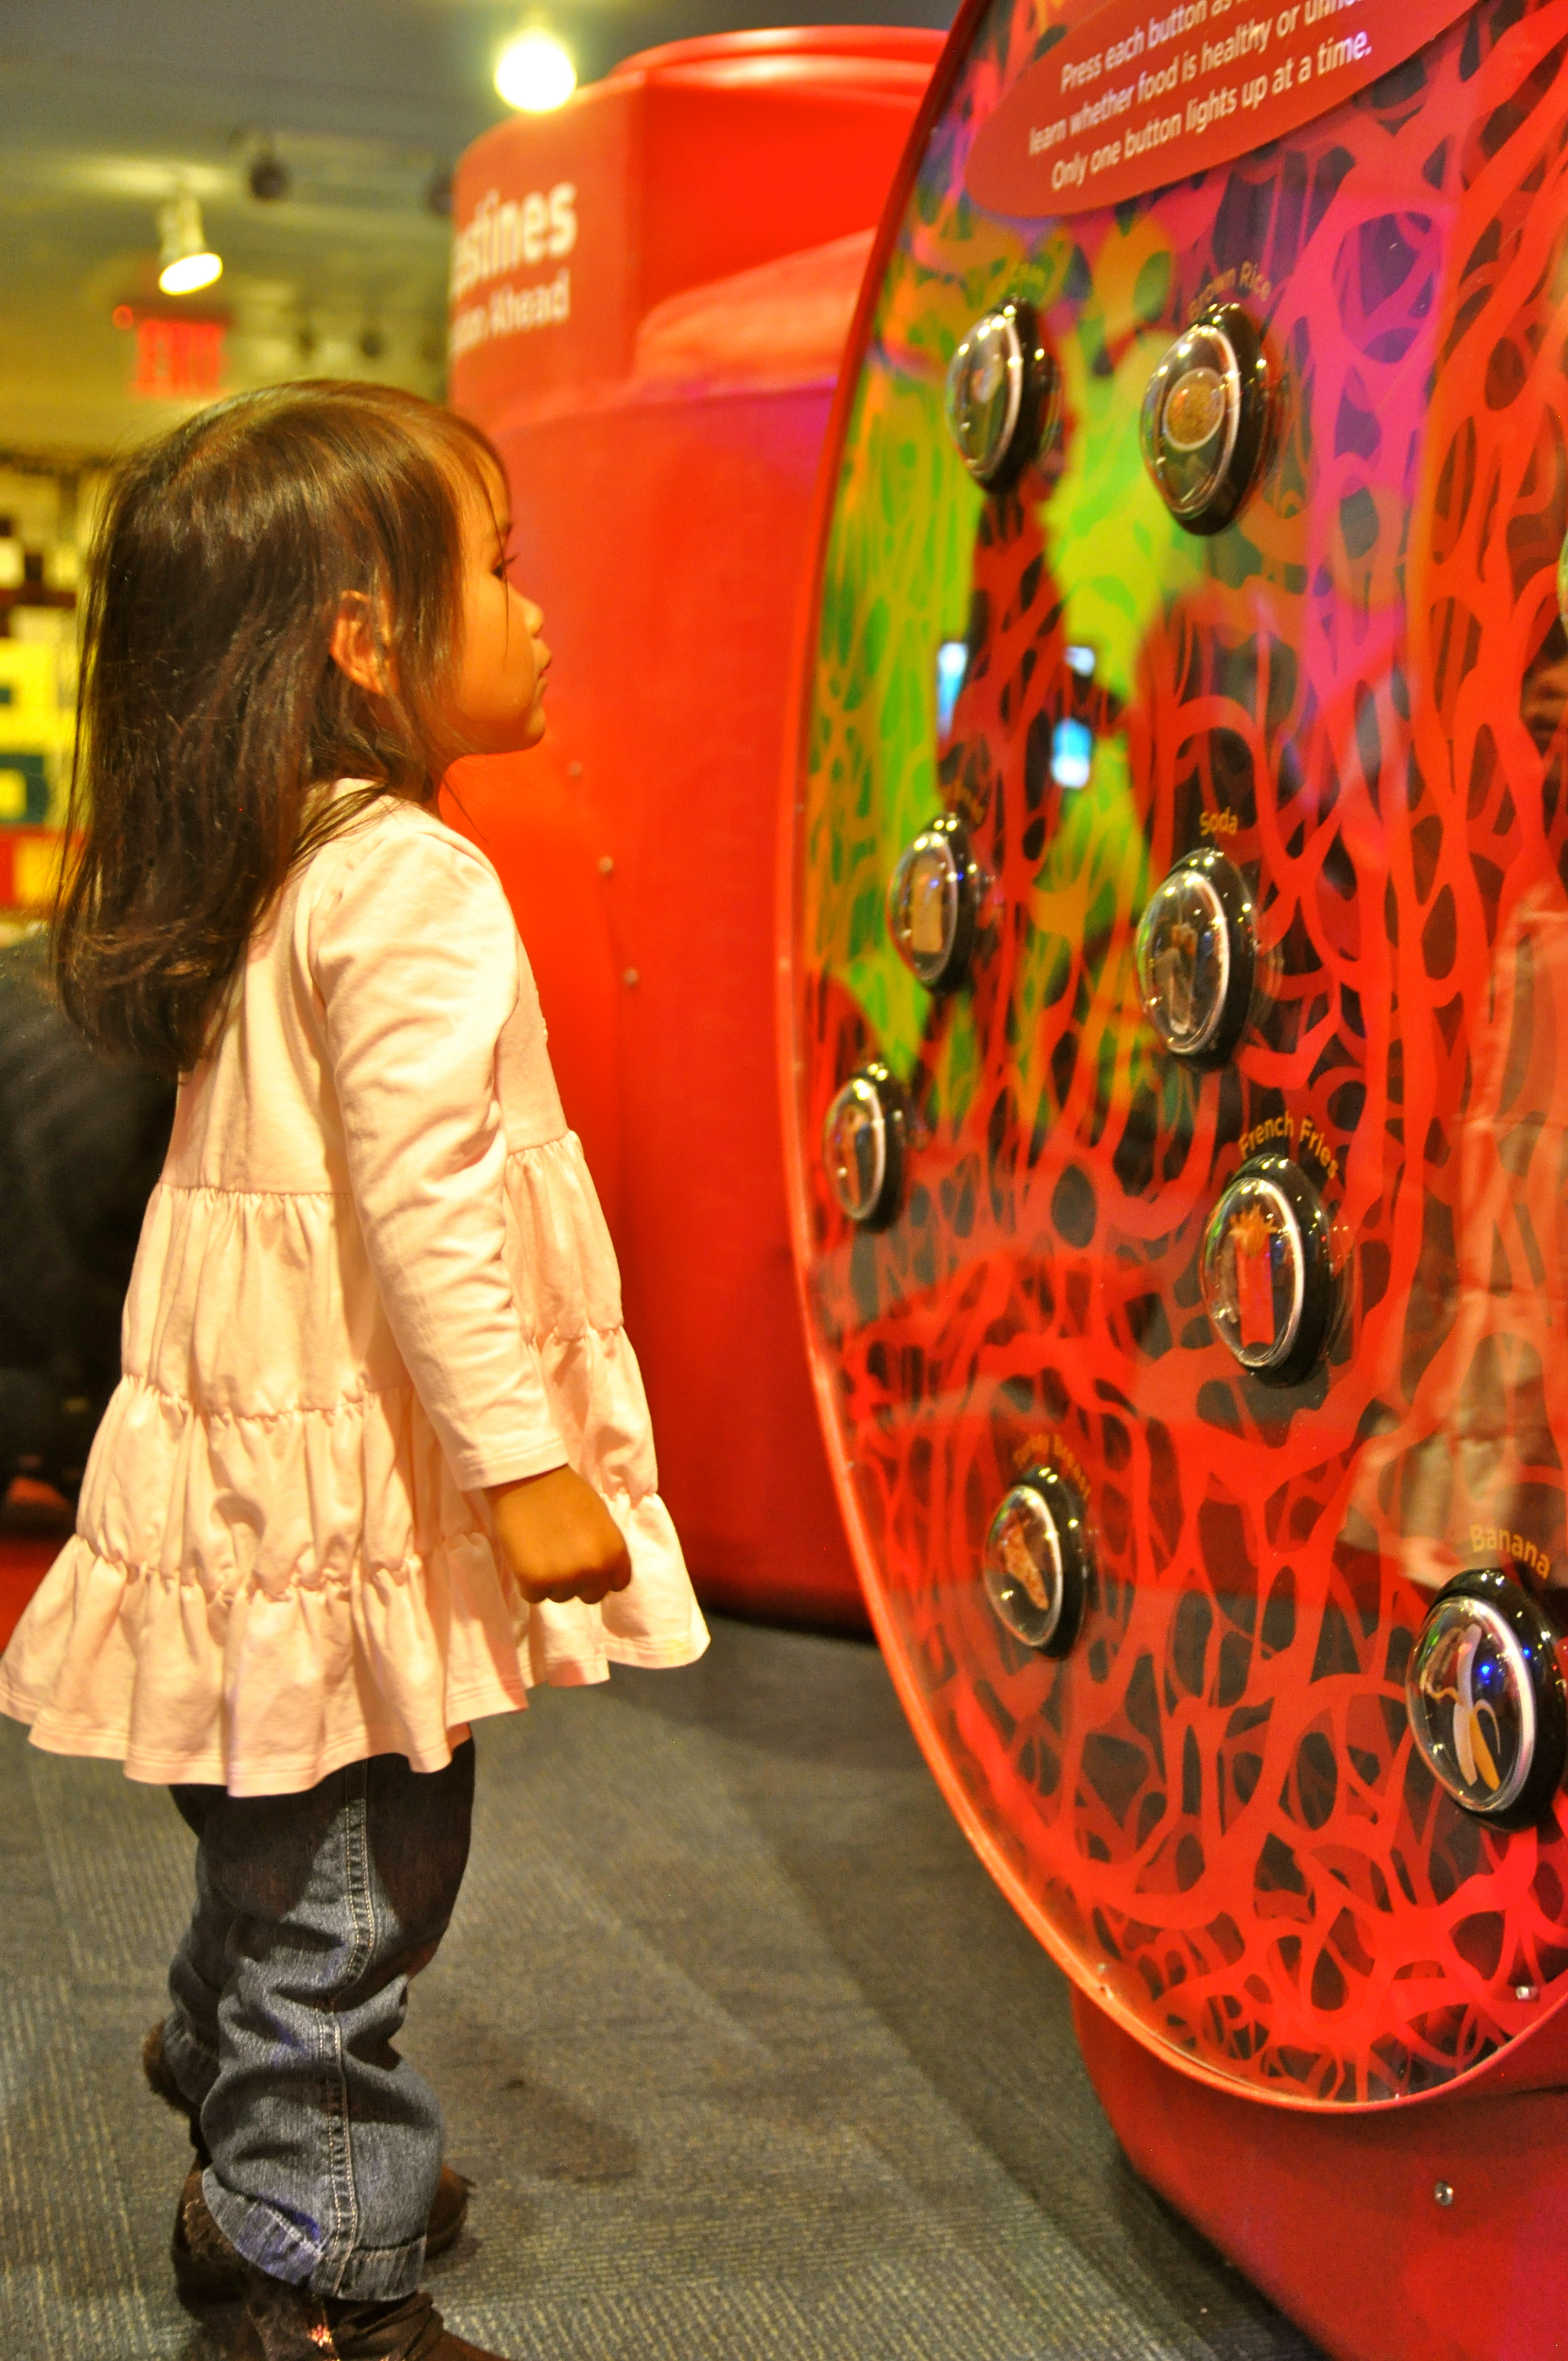 Young girl looking at red circle as a museum